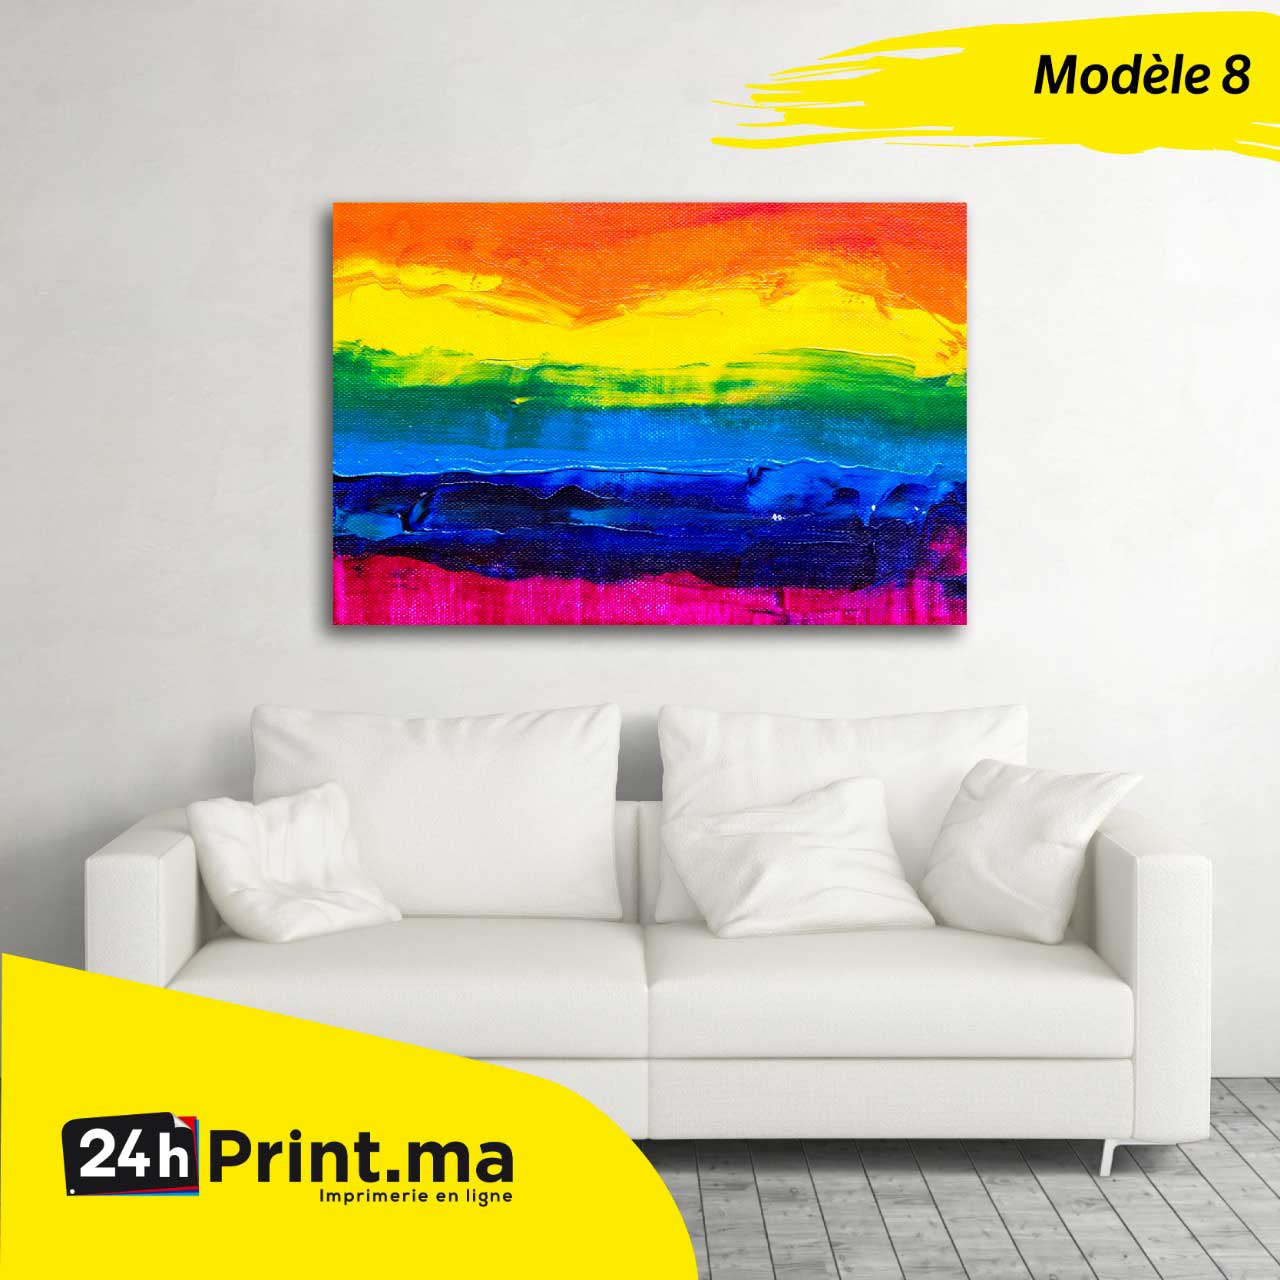 https://www.24hprint.ma/images/products_gallery_images/845.jpg